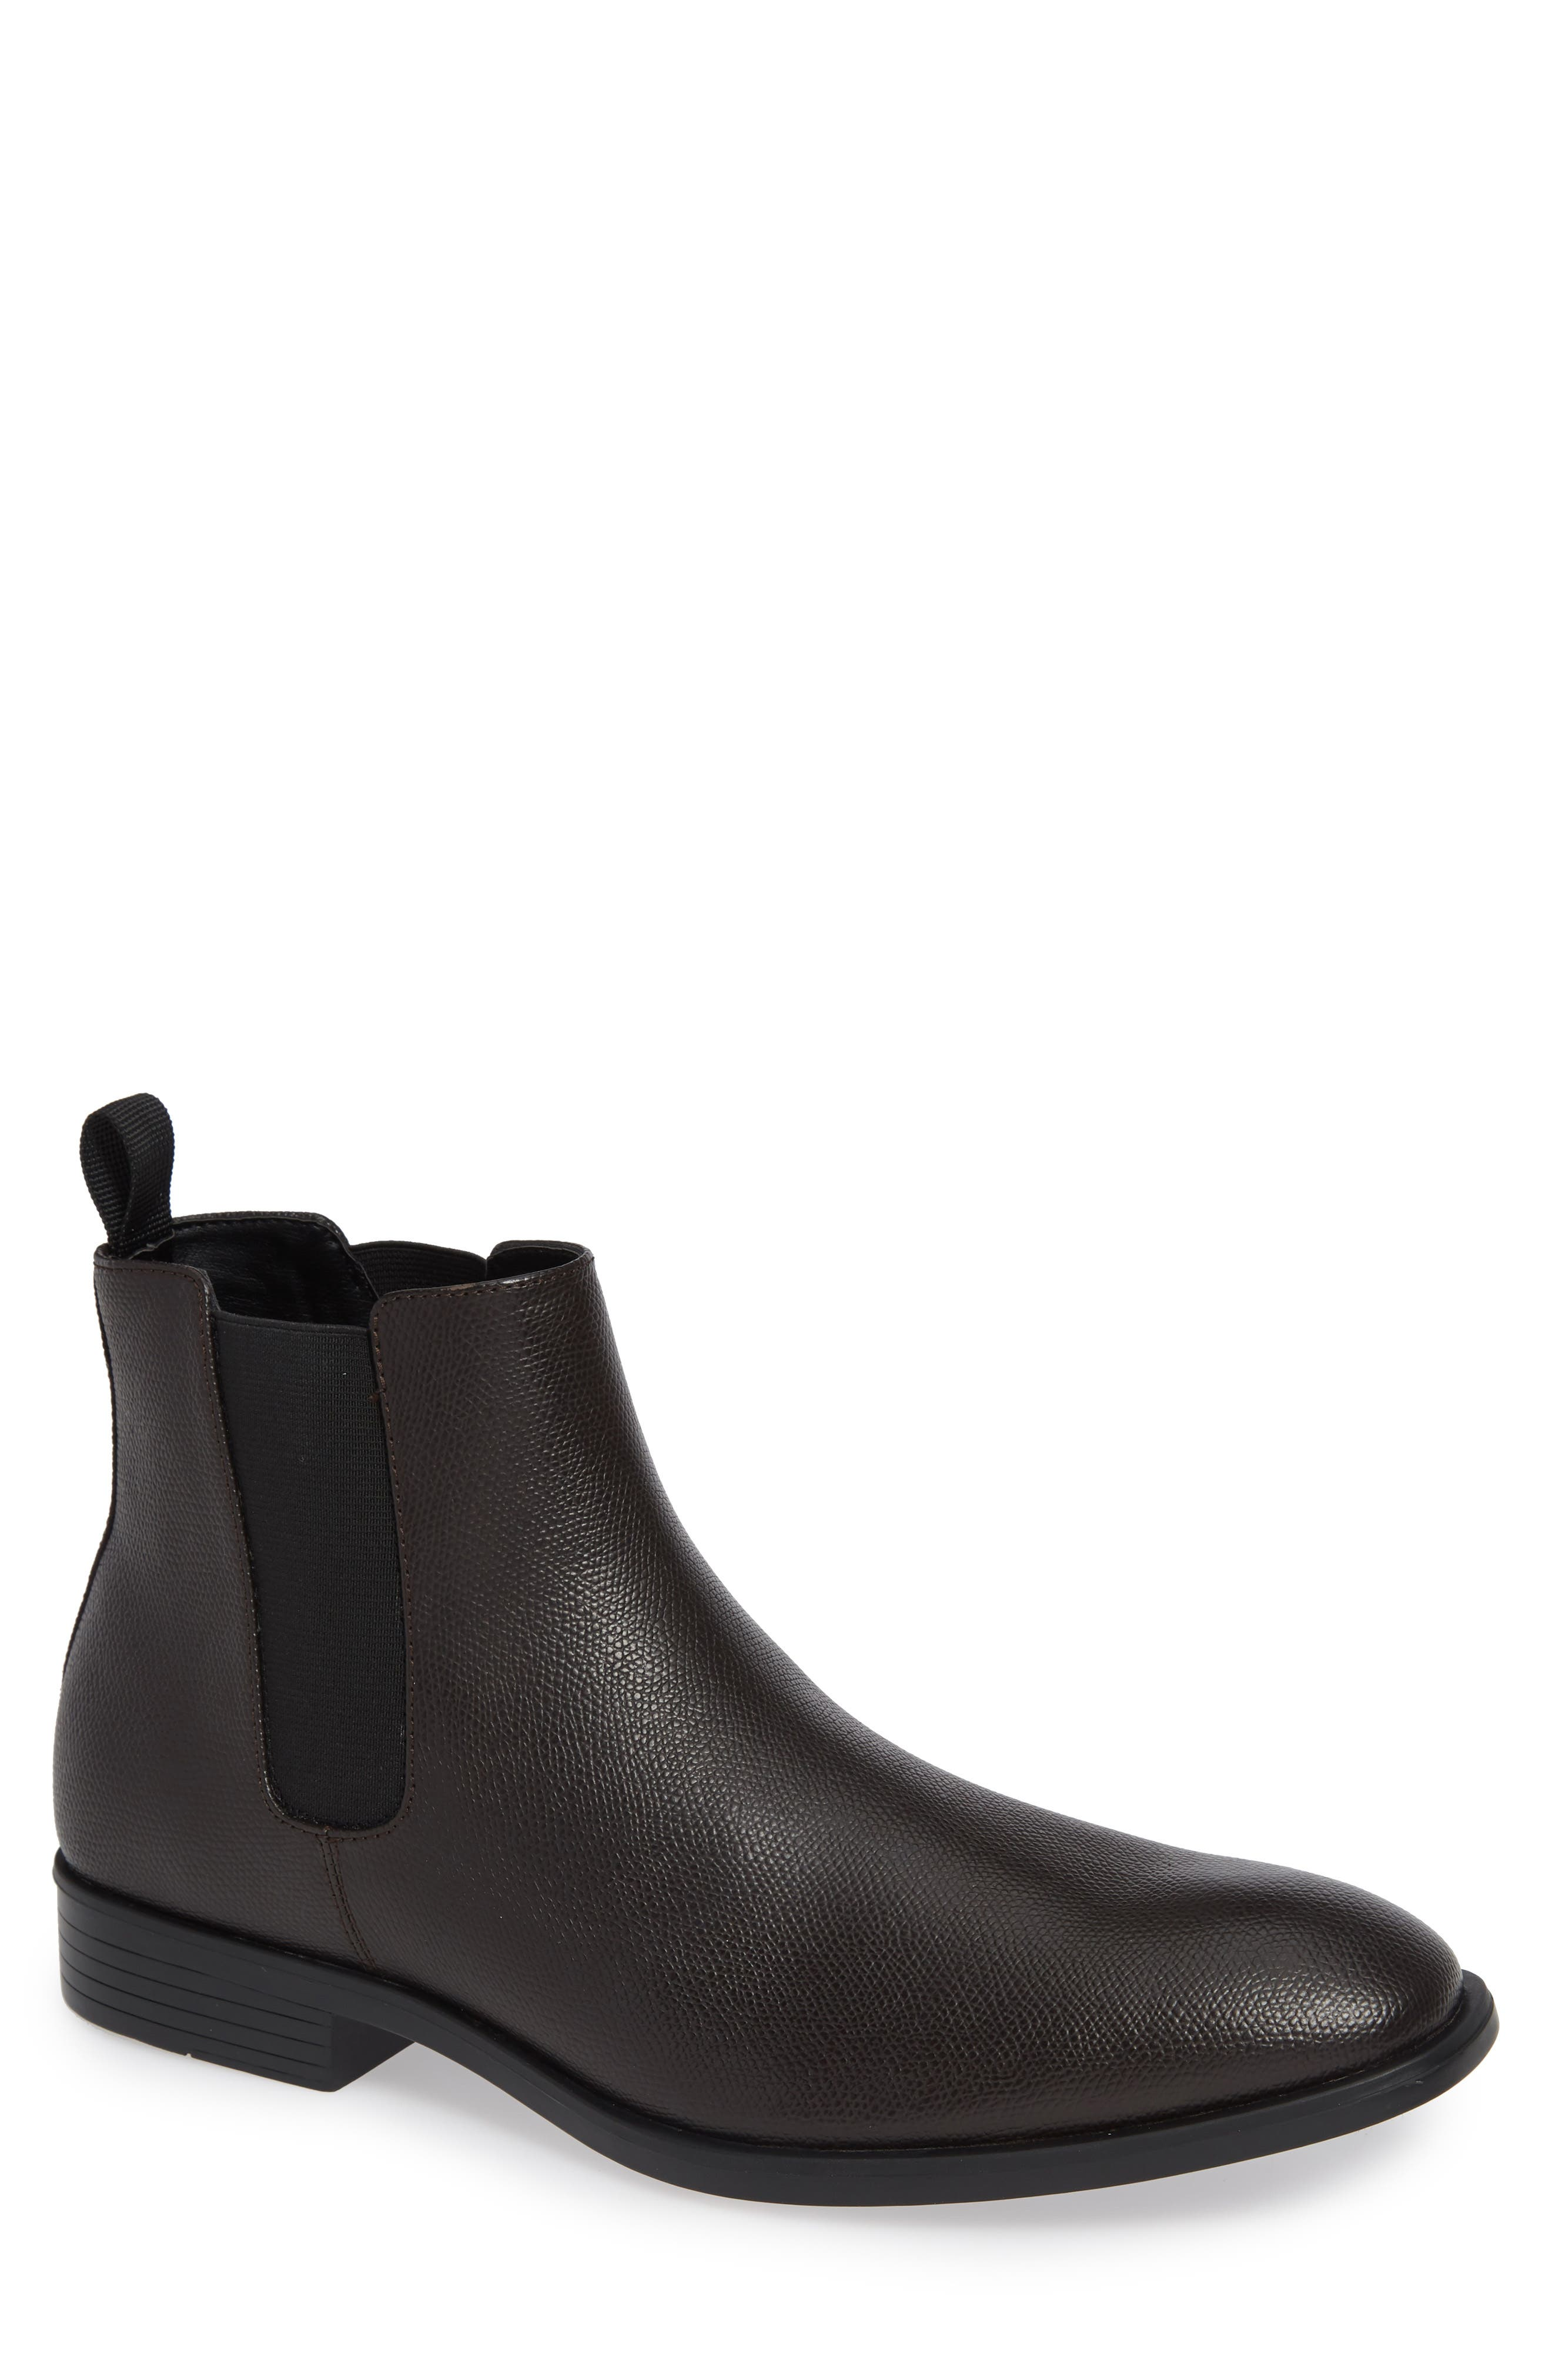 Corin Chelsea Boot,                             Main thumbnail 1, color,                             DARK BROWN LEATHER